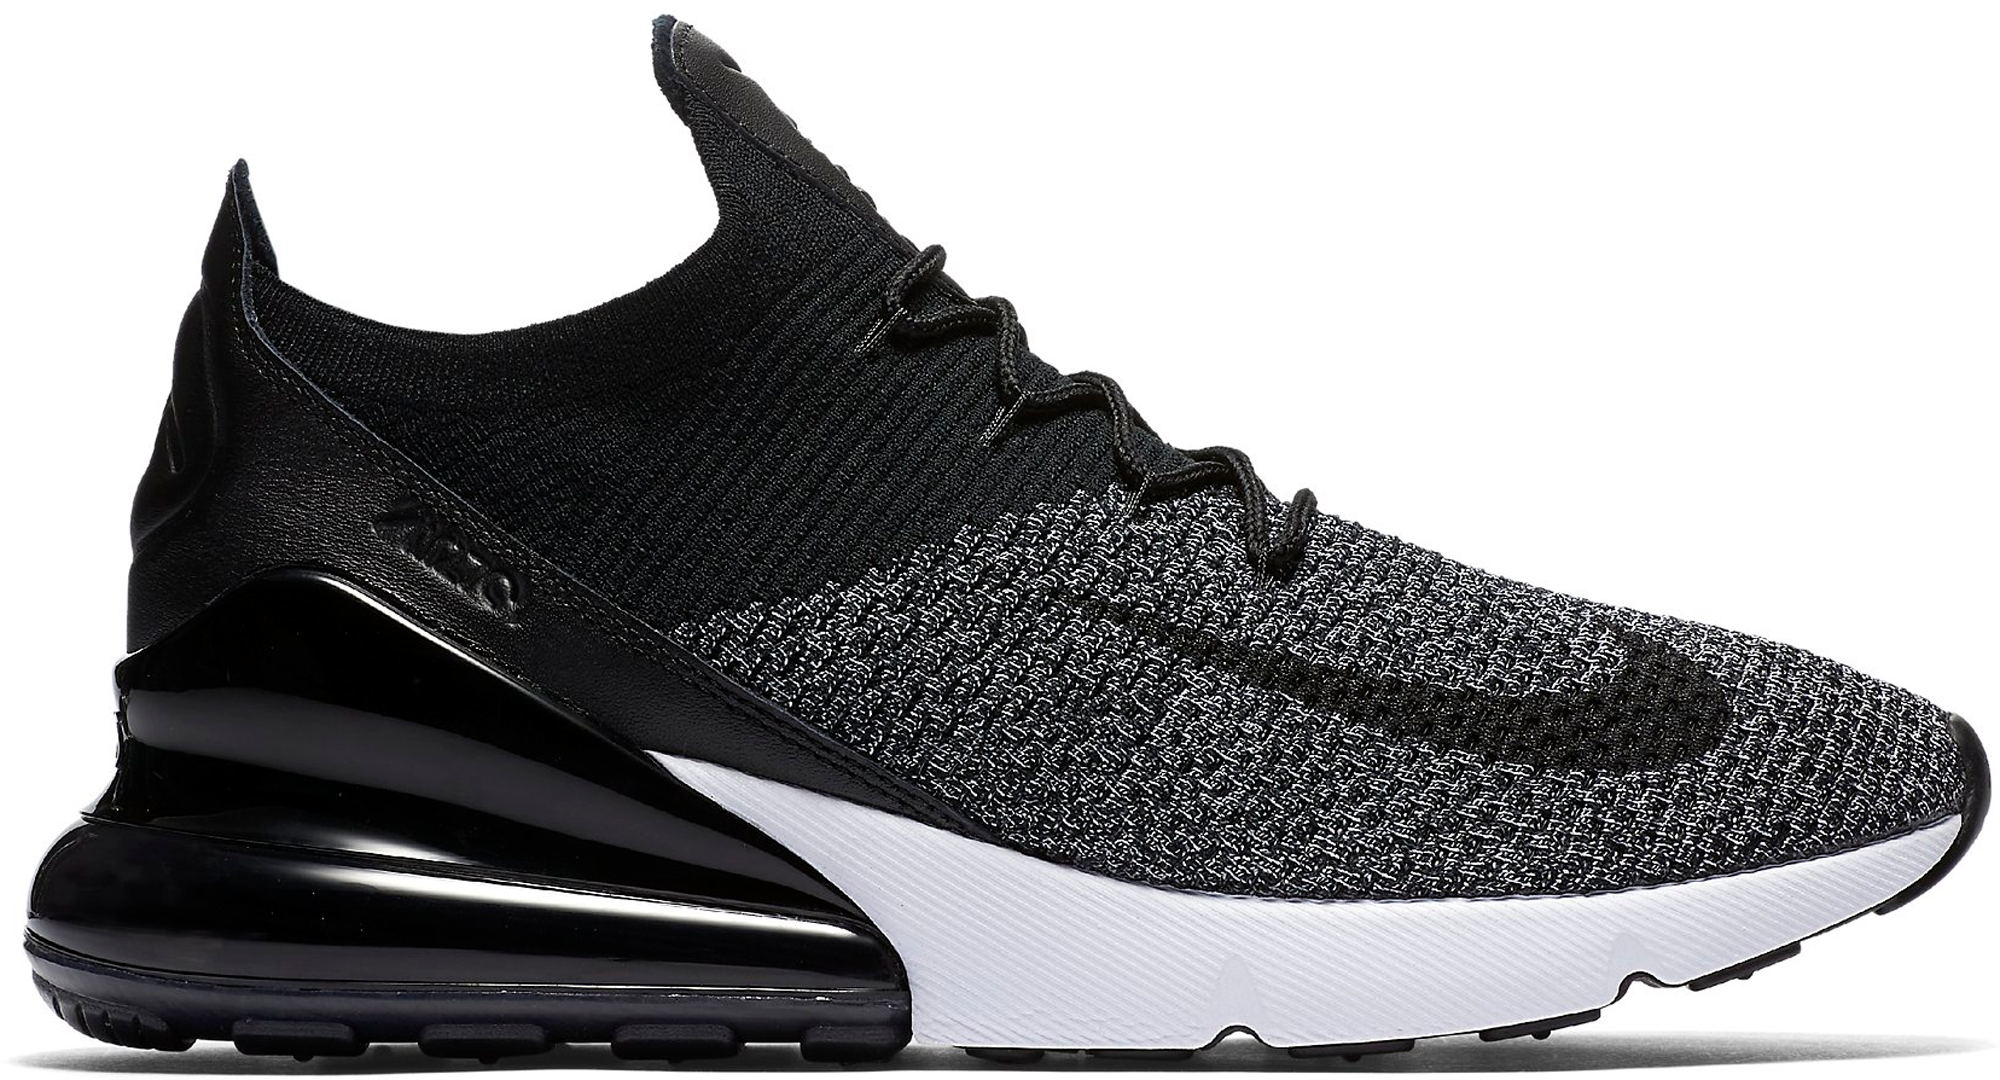 Air Max 270 Flyknit Black White